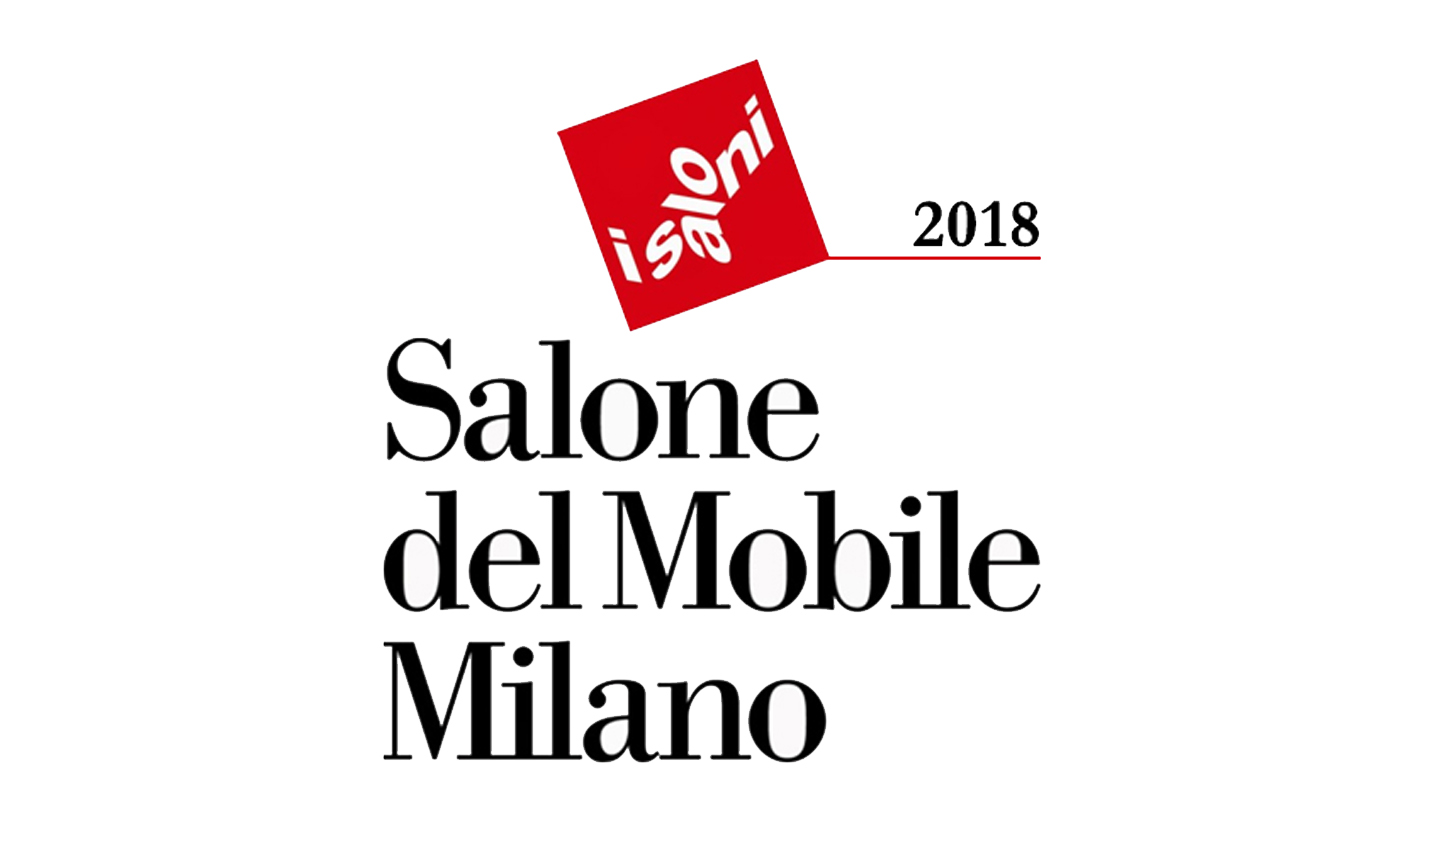 Meet The Winners of the CovetED Awards Presented at iSaloni 2018 spring fashion trends Spring Fashion Trends to Religiously Follow This Year Meet The Winners of the CovetED Awards Presented at iSaloni 2018 01 spring fashion trends Spring Fashion Trends to Religiously Follow This Year Meet The Winners of the CovetED Awards Presented at iSaloni 2018 01